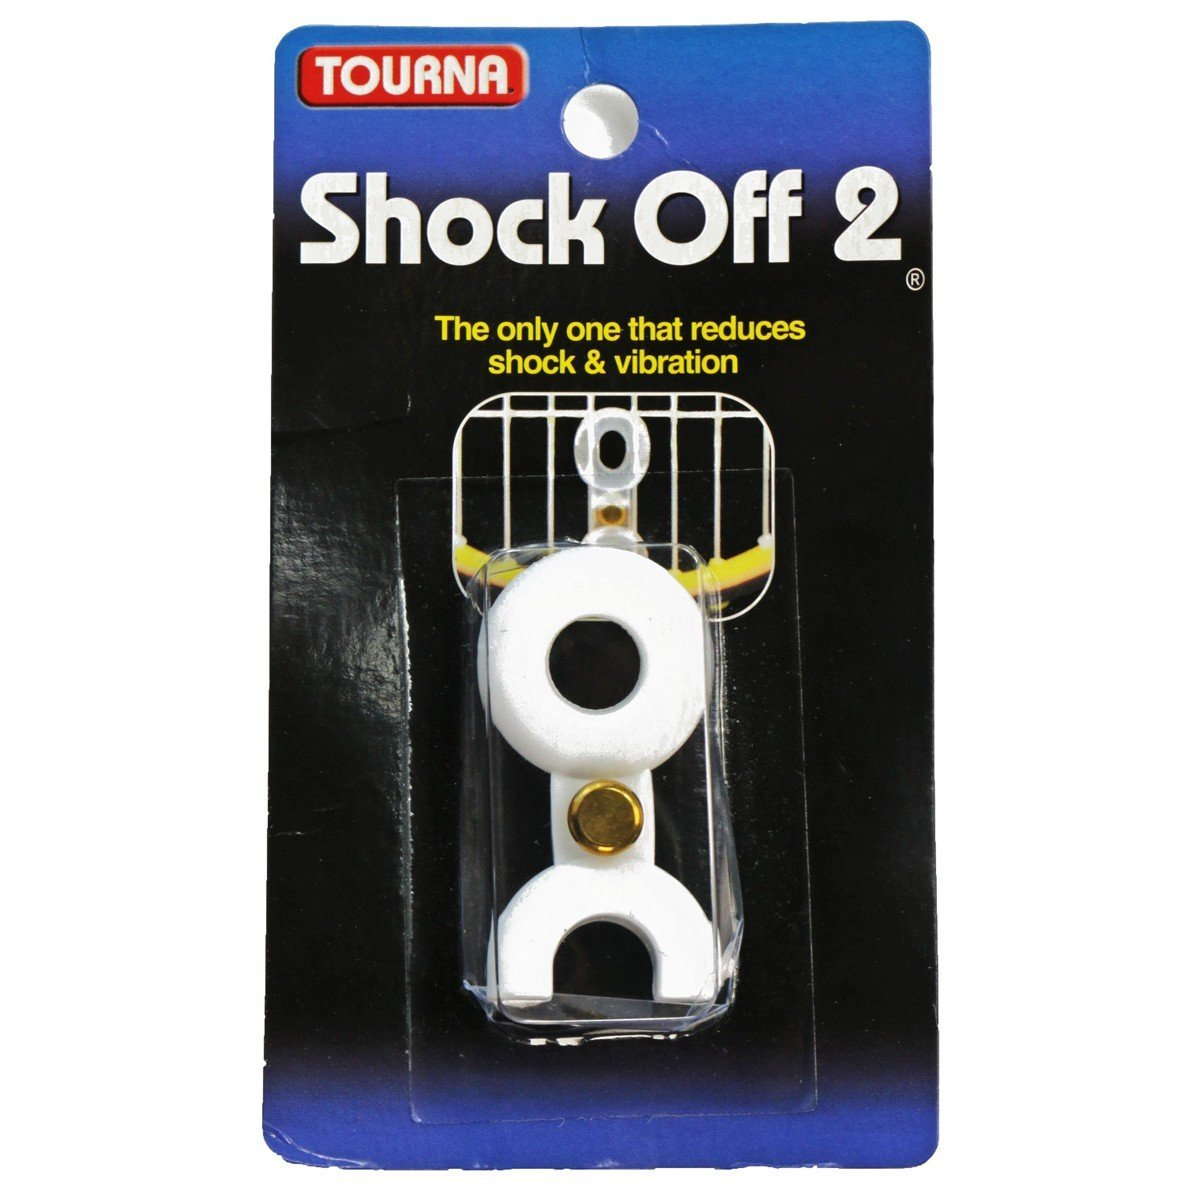 Antivibrateurs Shock off 2 - Mytennishop